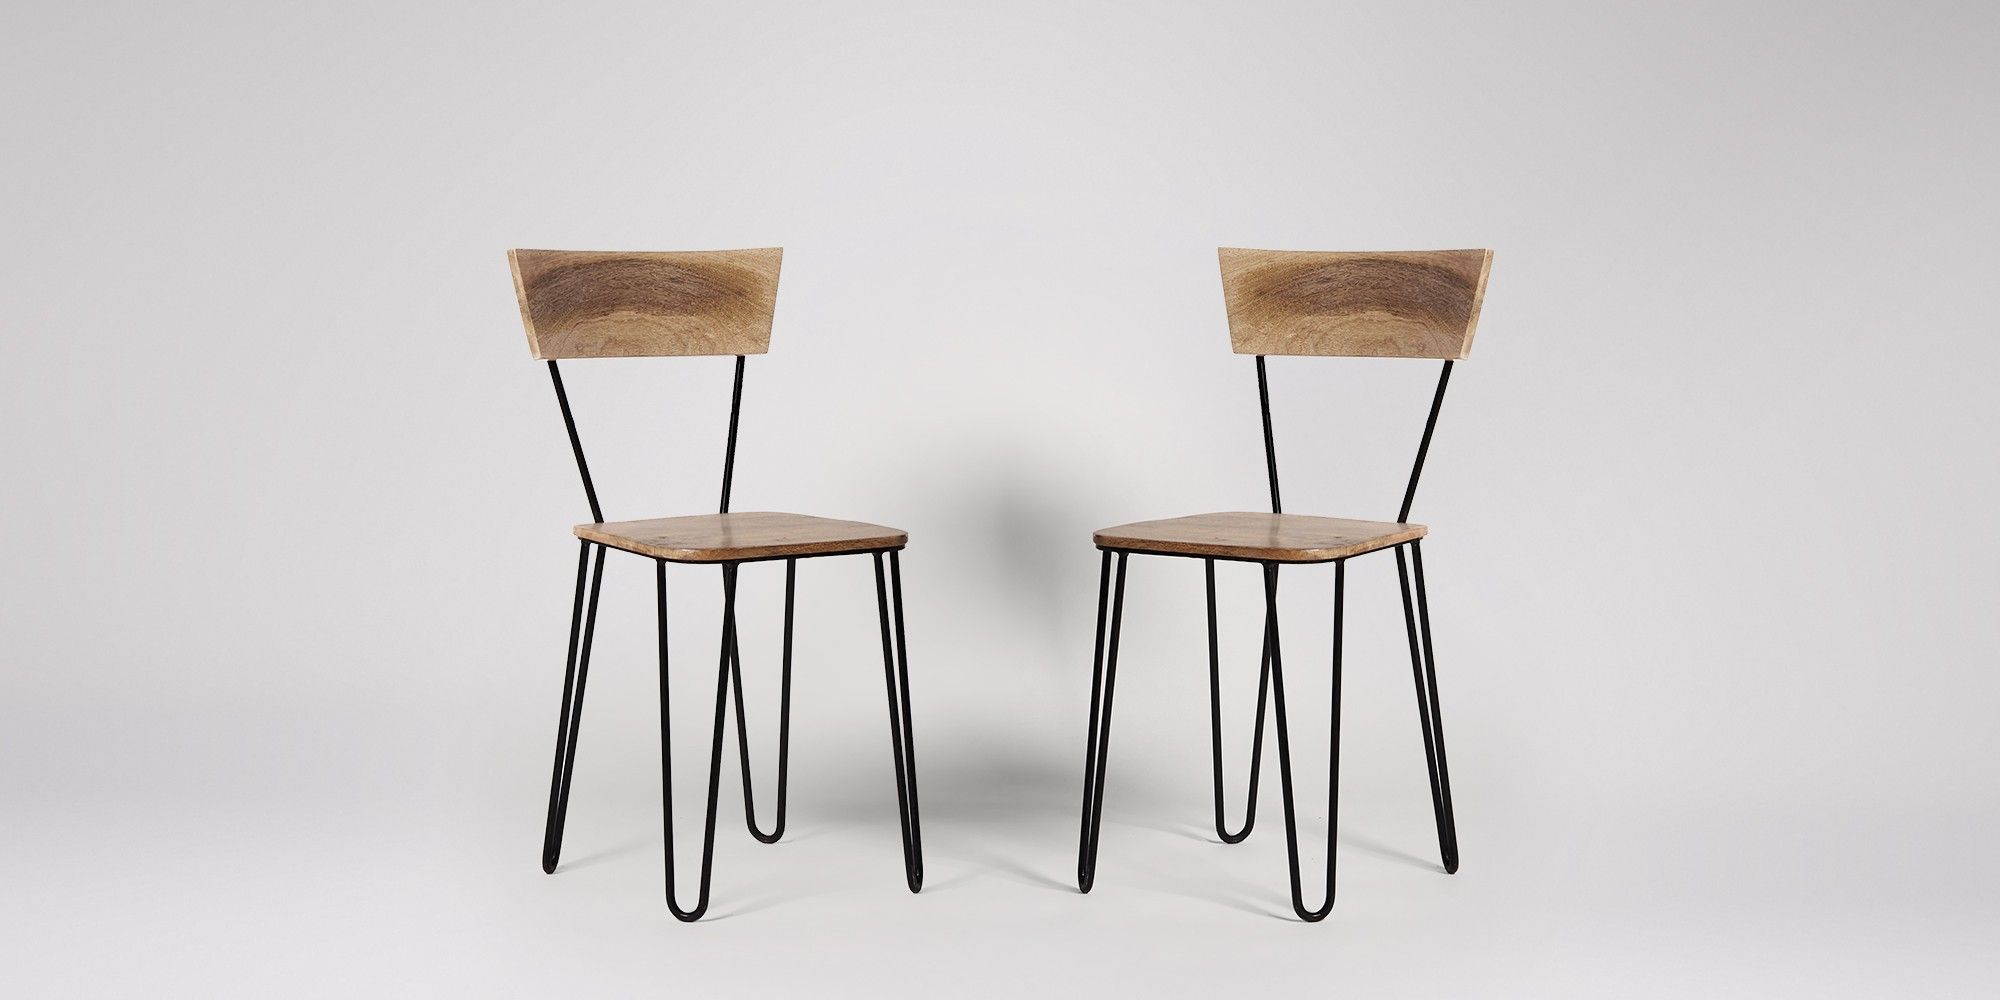 Swoon Editions Dining chair industrial style in mango wood and